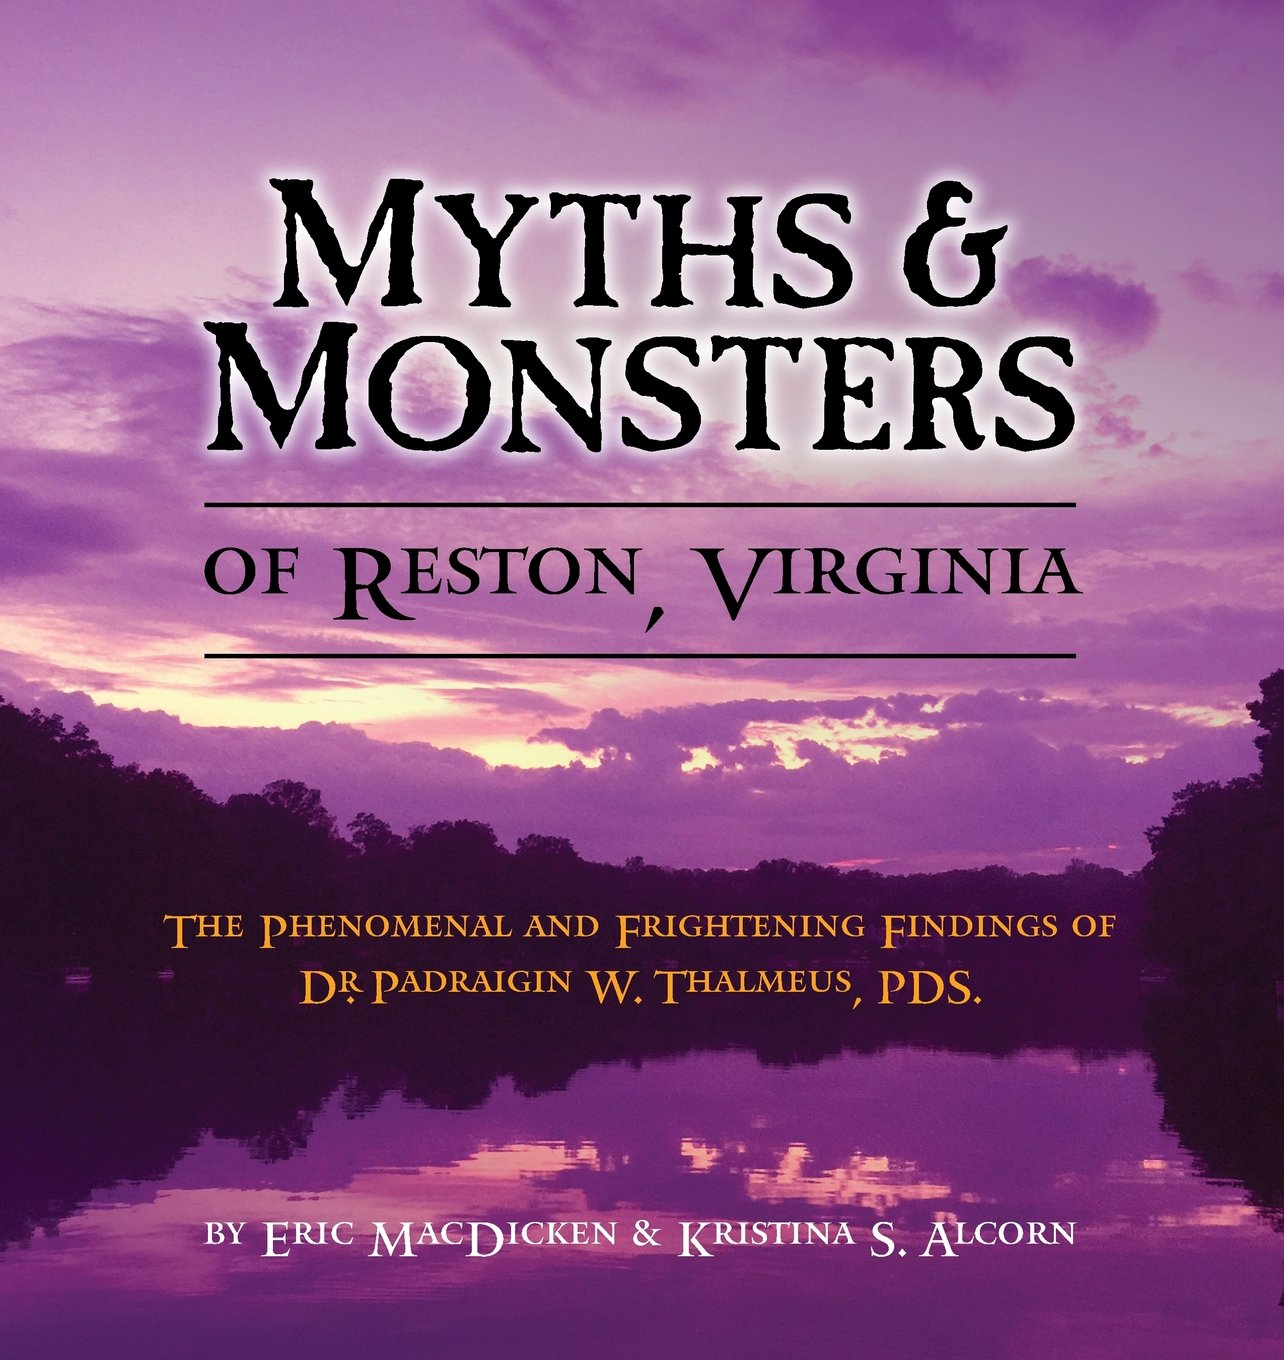 Read Online Myths & Monsters of Reston, Virginia: The Phenomenal and Frightening Findings of Dr. Padraigin W. Thalmeus, Pds. ePub fb2 book